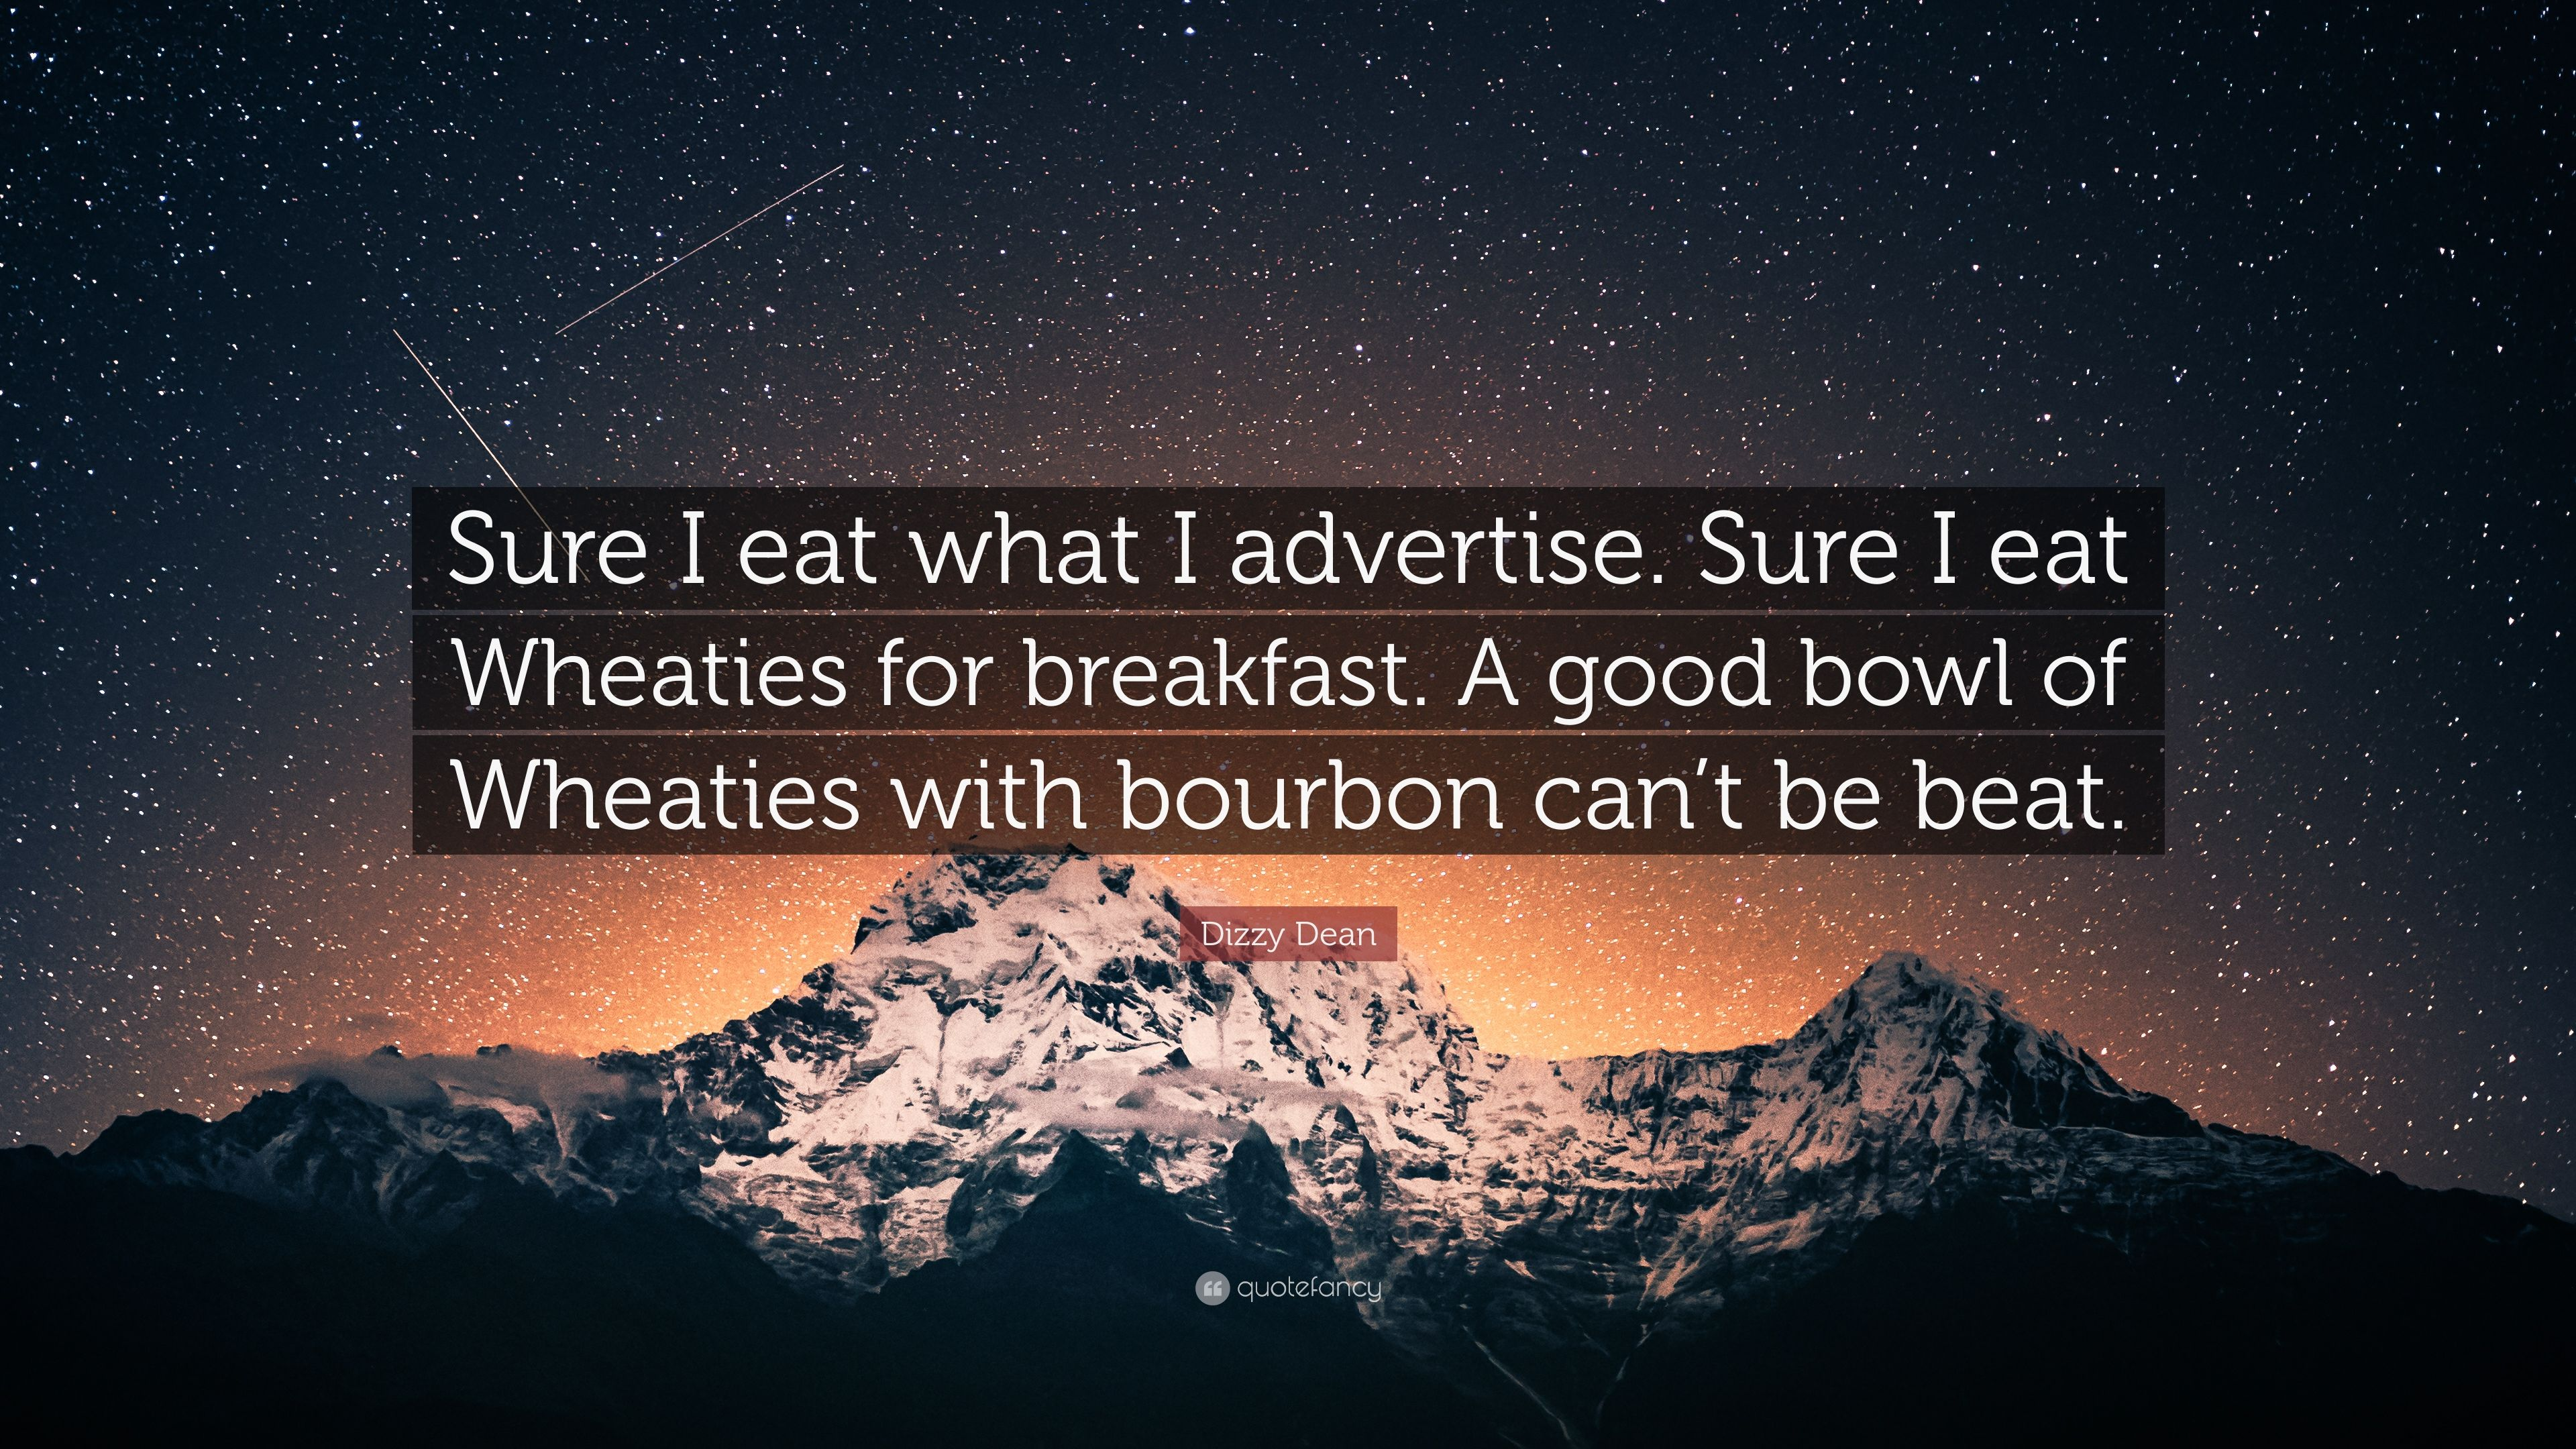 """Dizzy Dean Quote: """"Sure I eat what I advertise. Sure I eat Wheaties for breakfast. A good bowl of Wheaties with bourbon can't be beat."""" (7 wallpapers) - Quotefancy"""